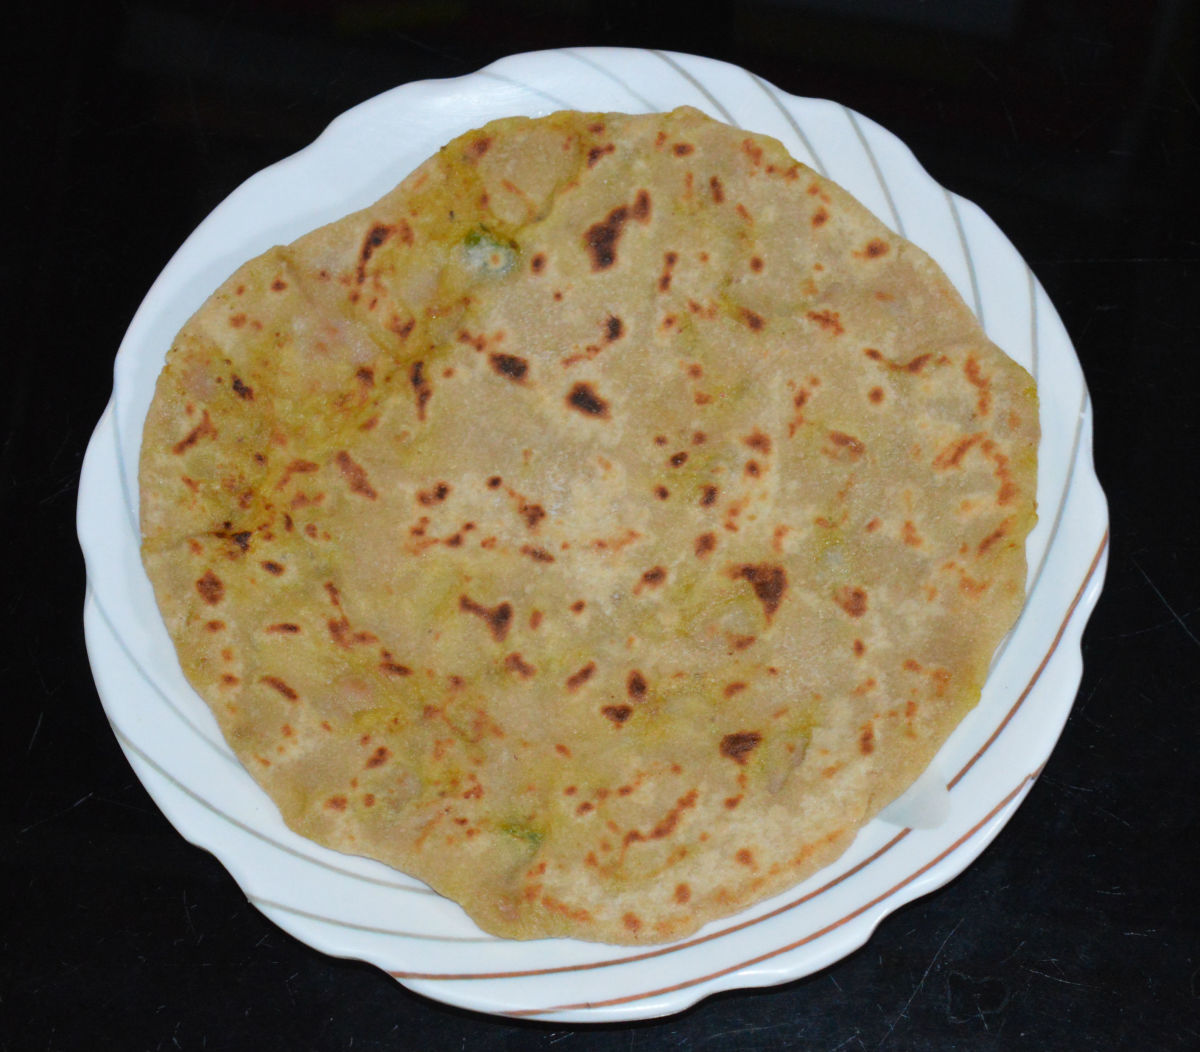 Green Banana Paratha (Flat Bread) Recipe